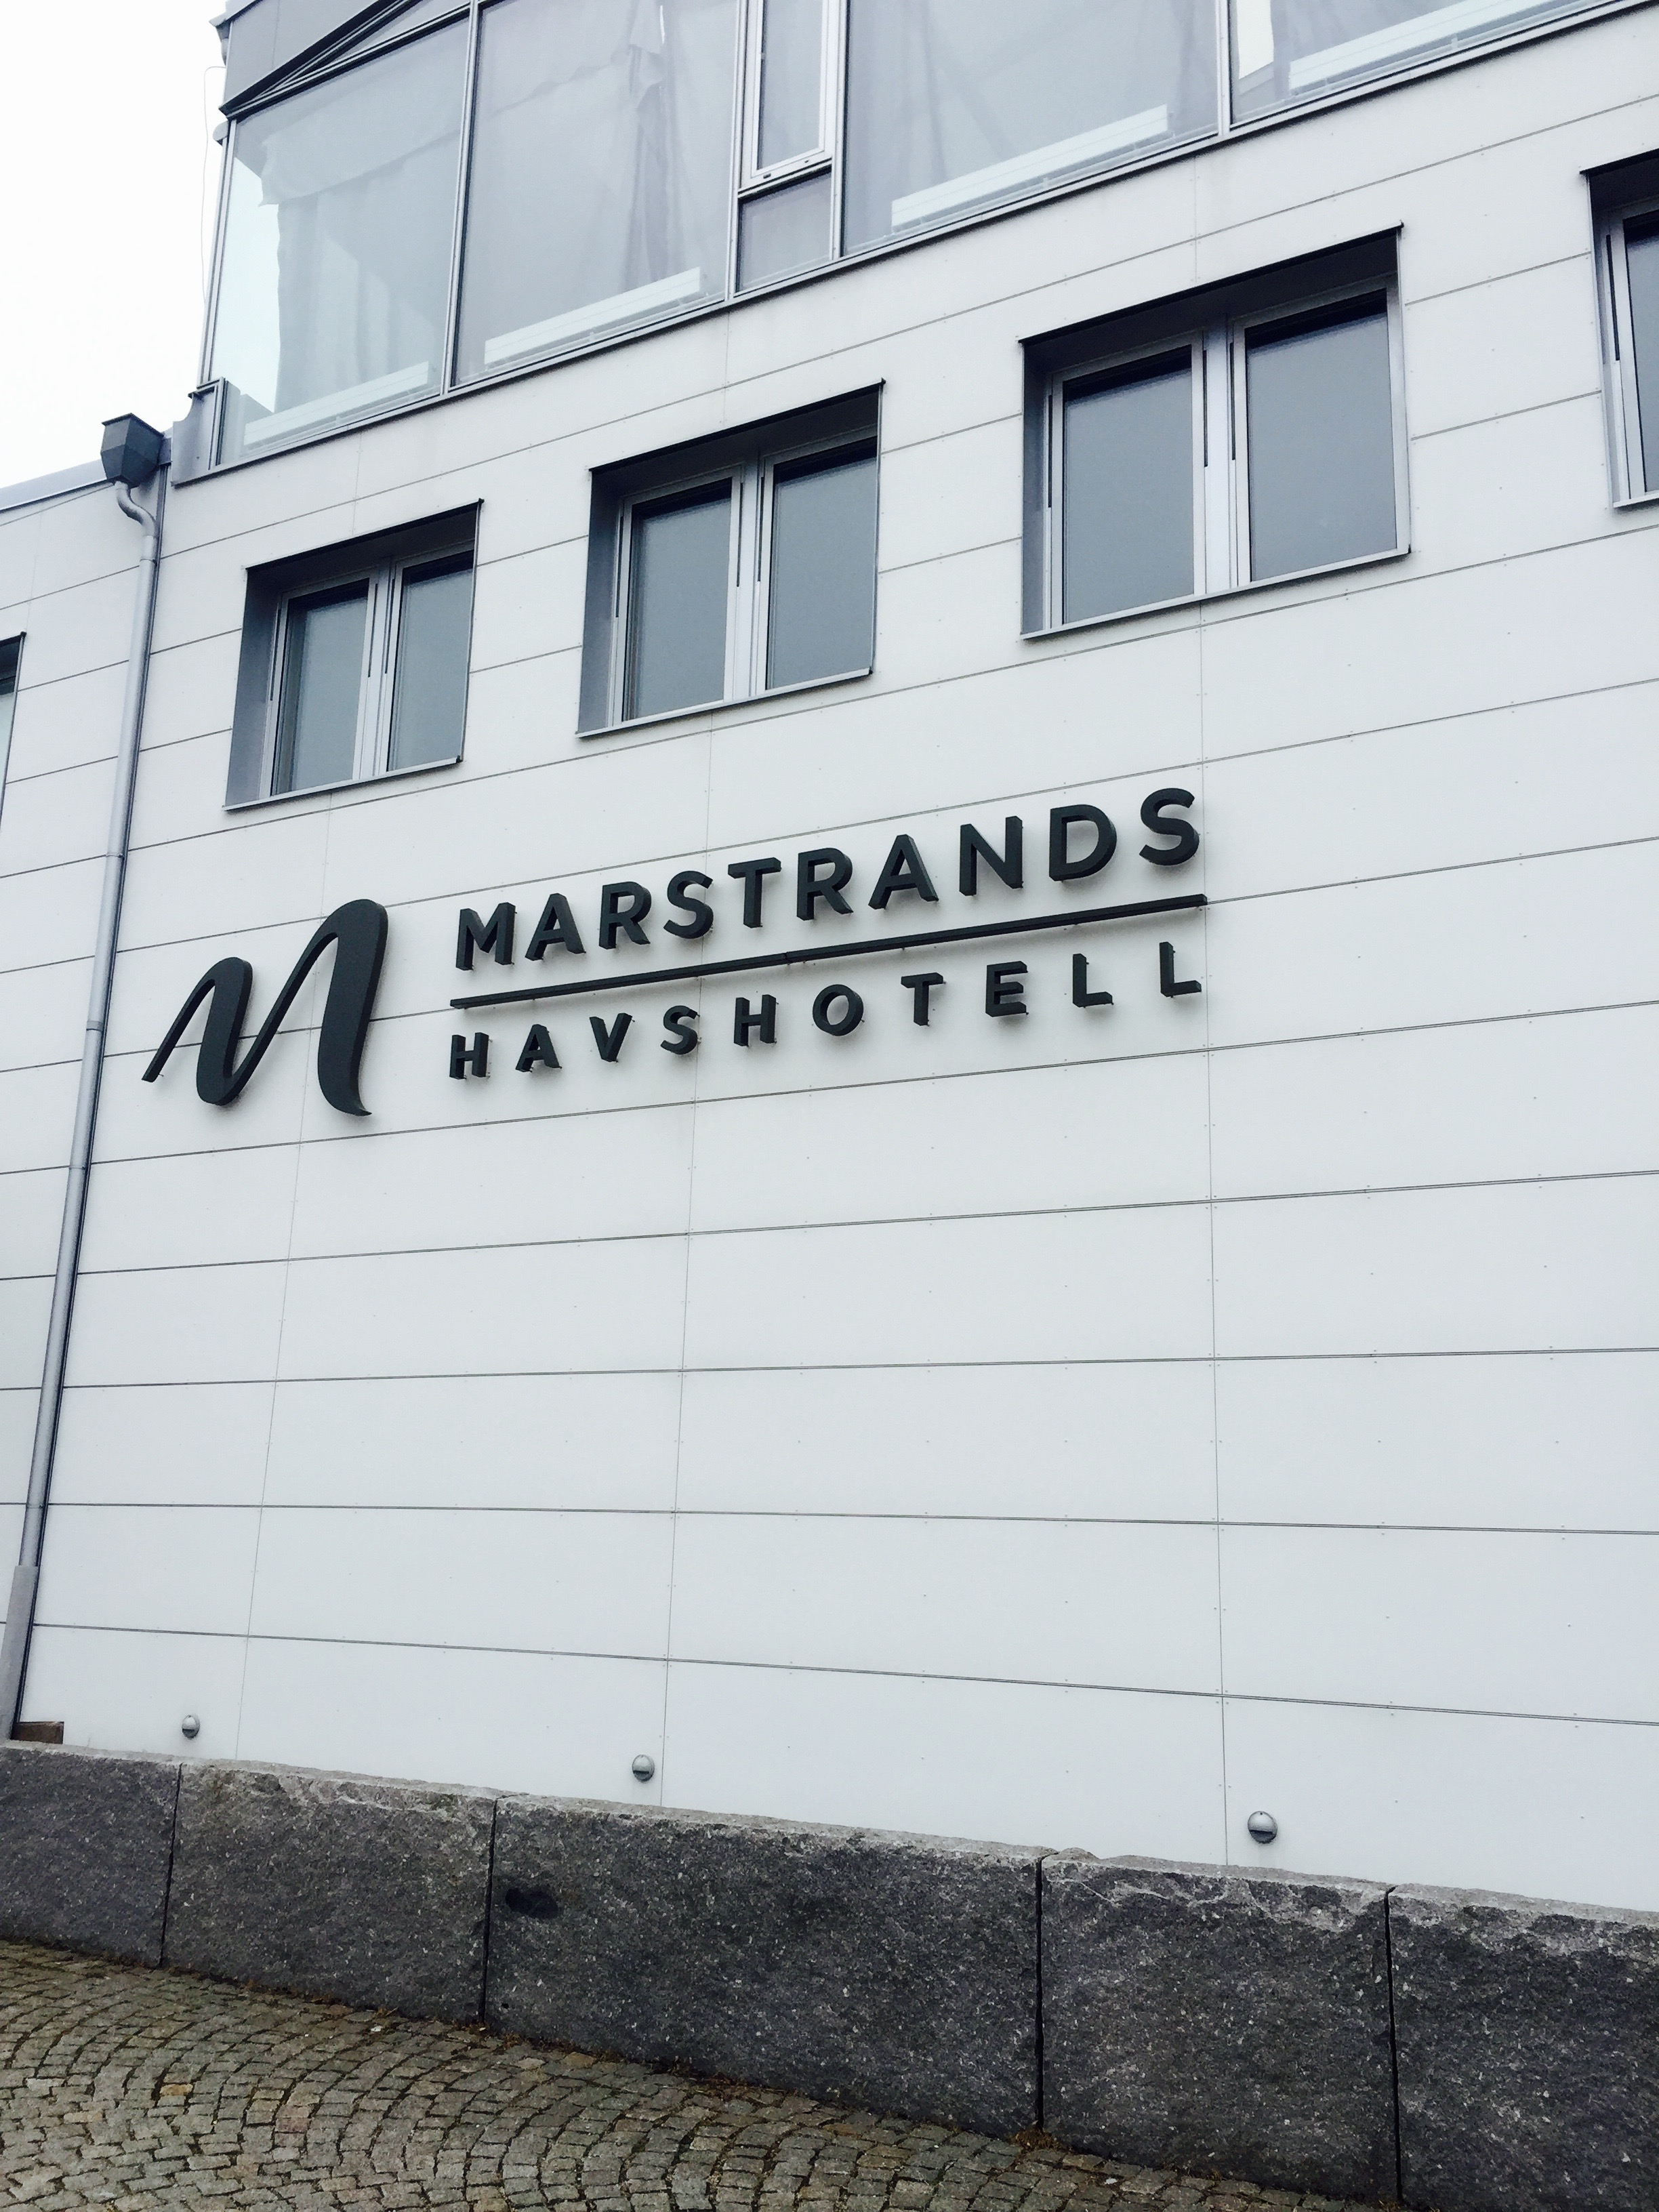 Marstrands Havshotel